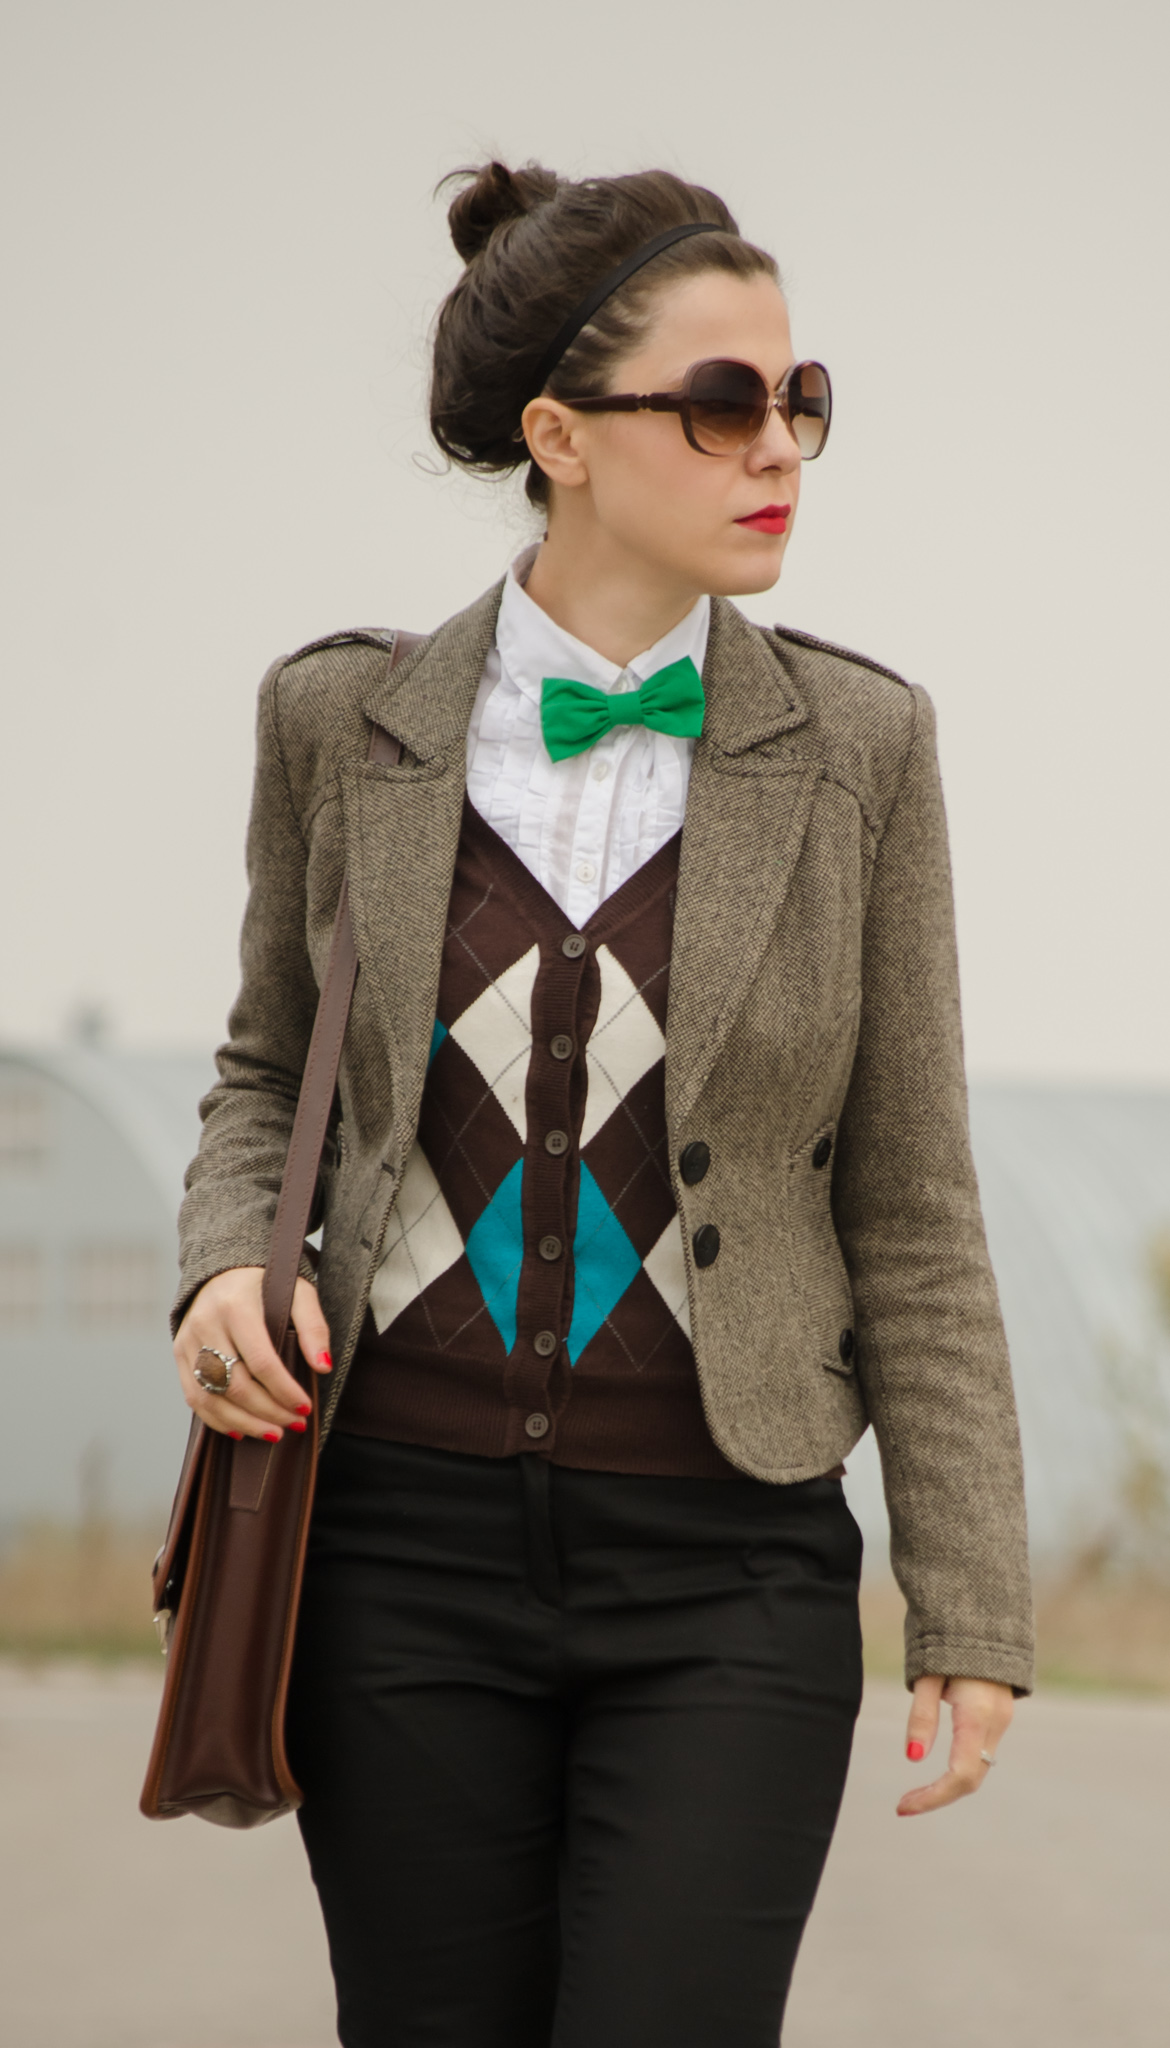 black pants green socks heels over sized scarf burgundy brown jacket fall autumn checkers sweater bow-tie stachel bag thrifted vero moda